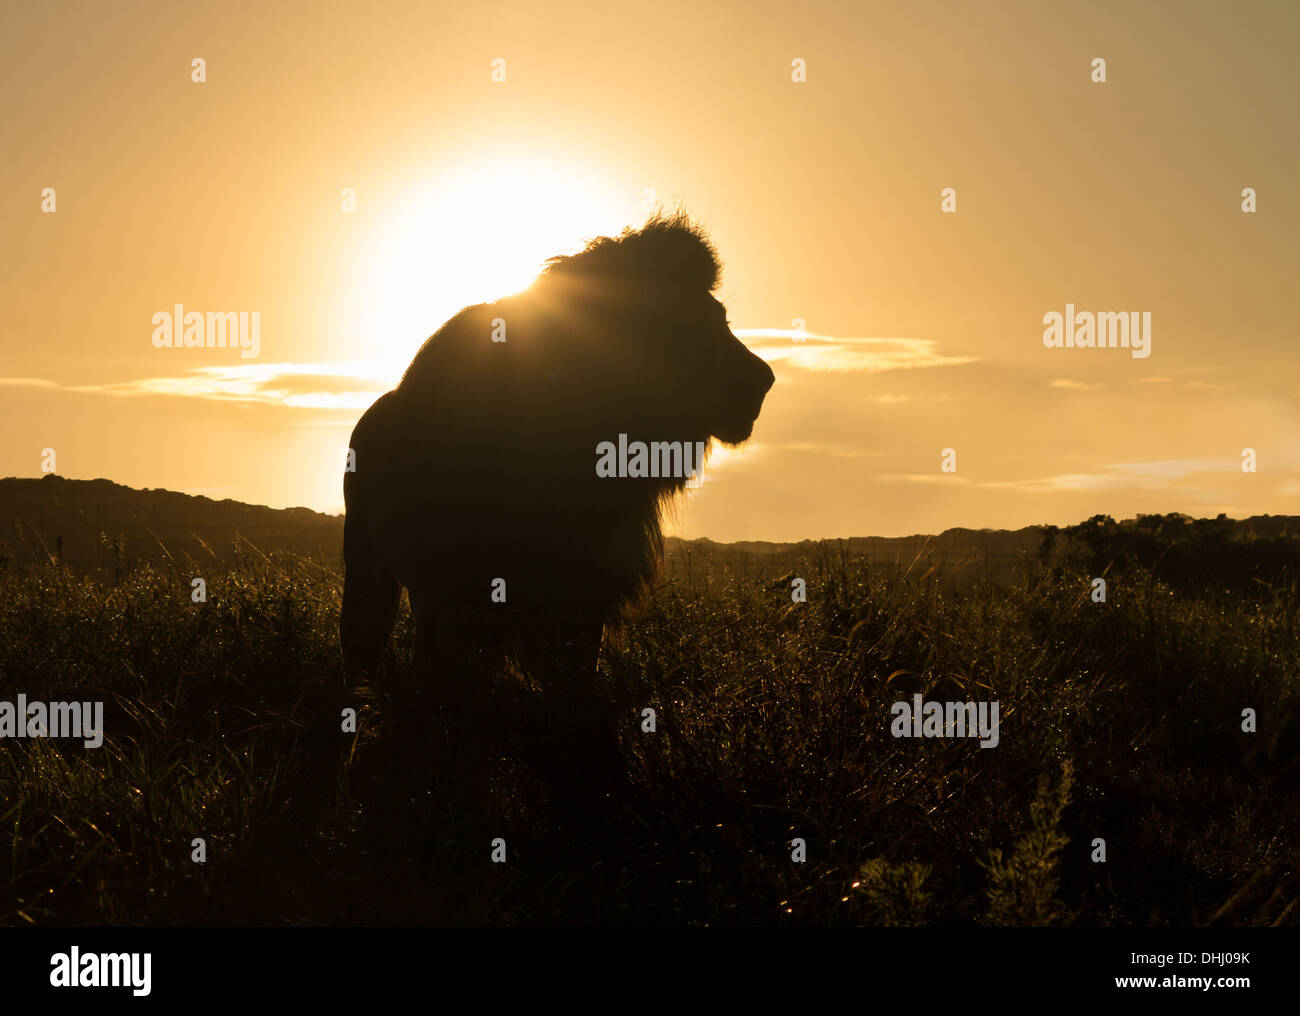 Silhouette of an old large male lion in the savannah in South Africa at sunset Stock Photo